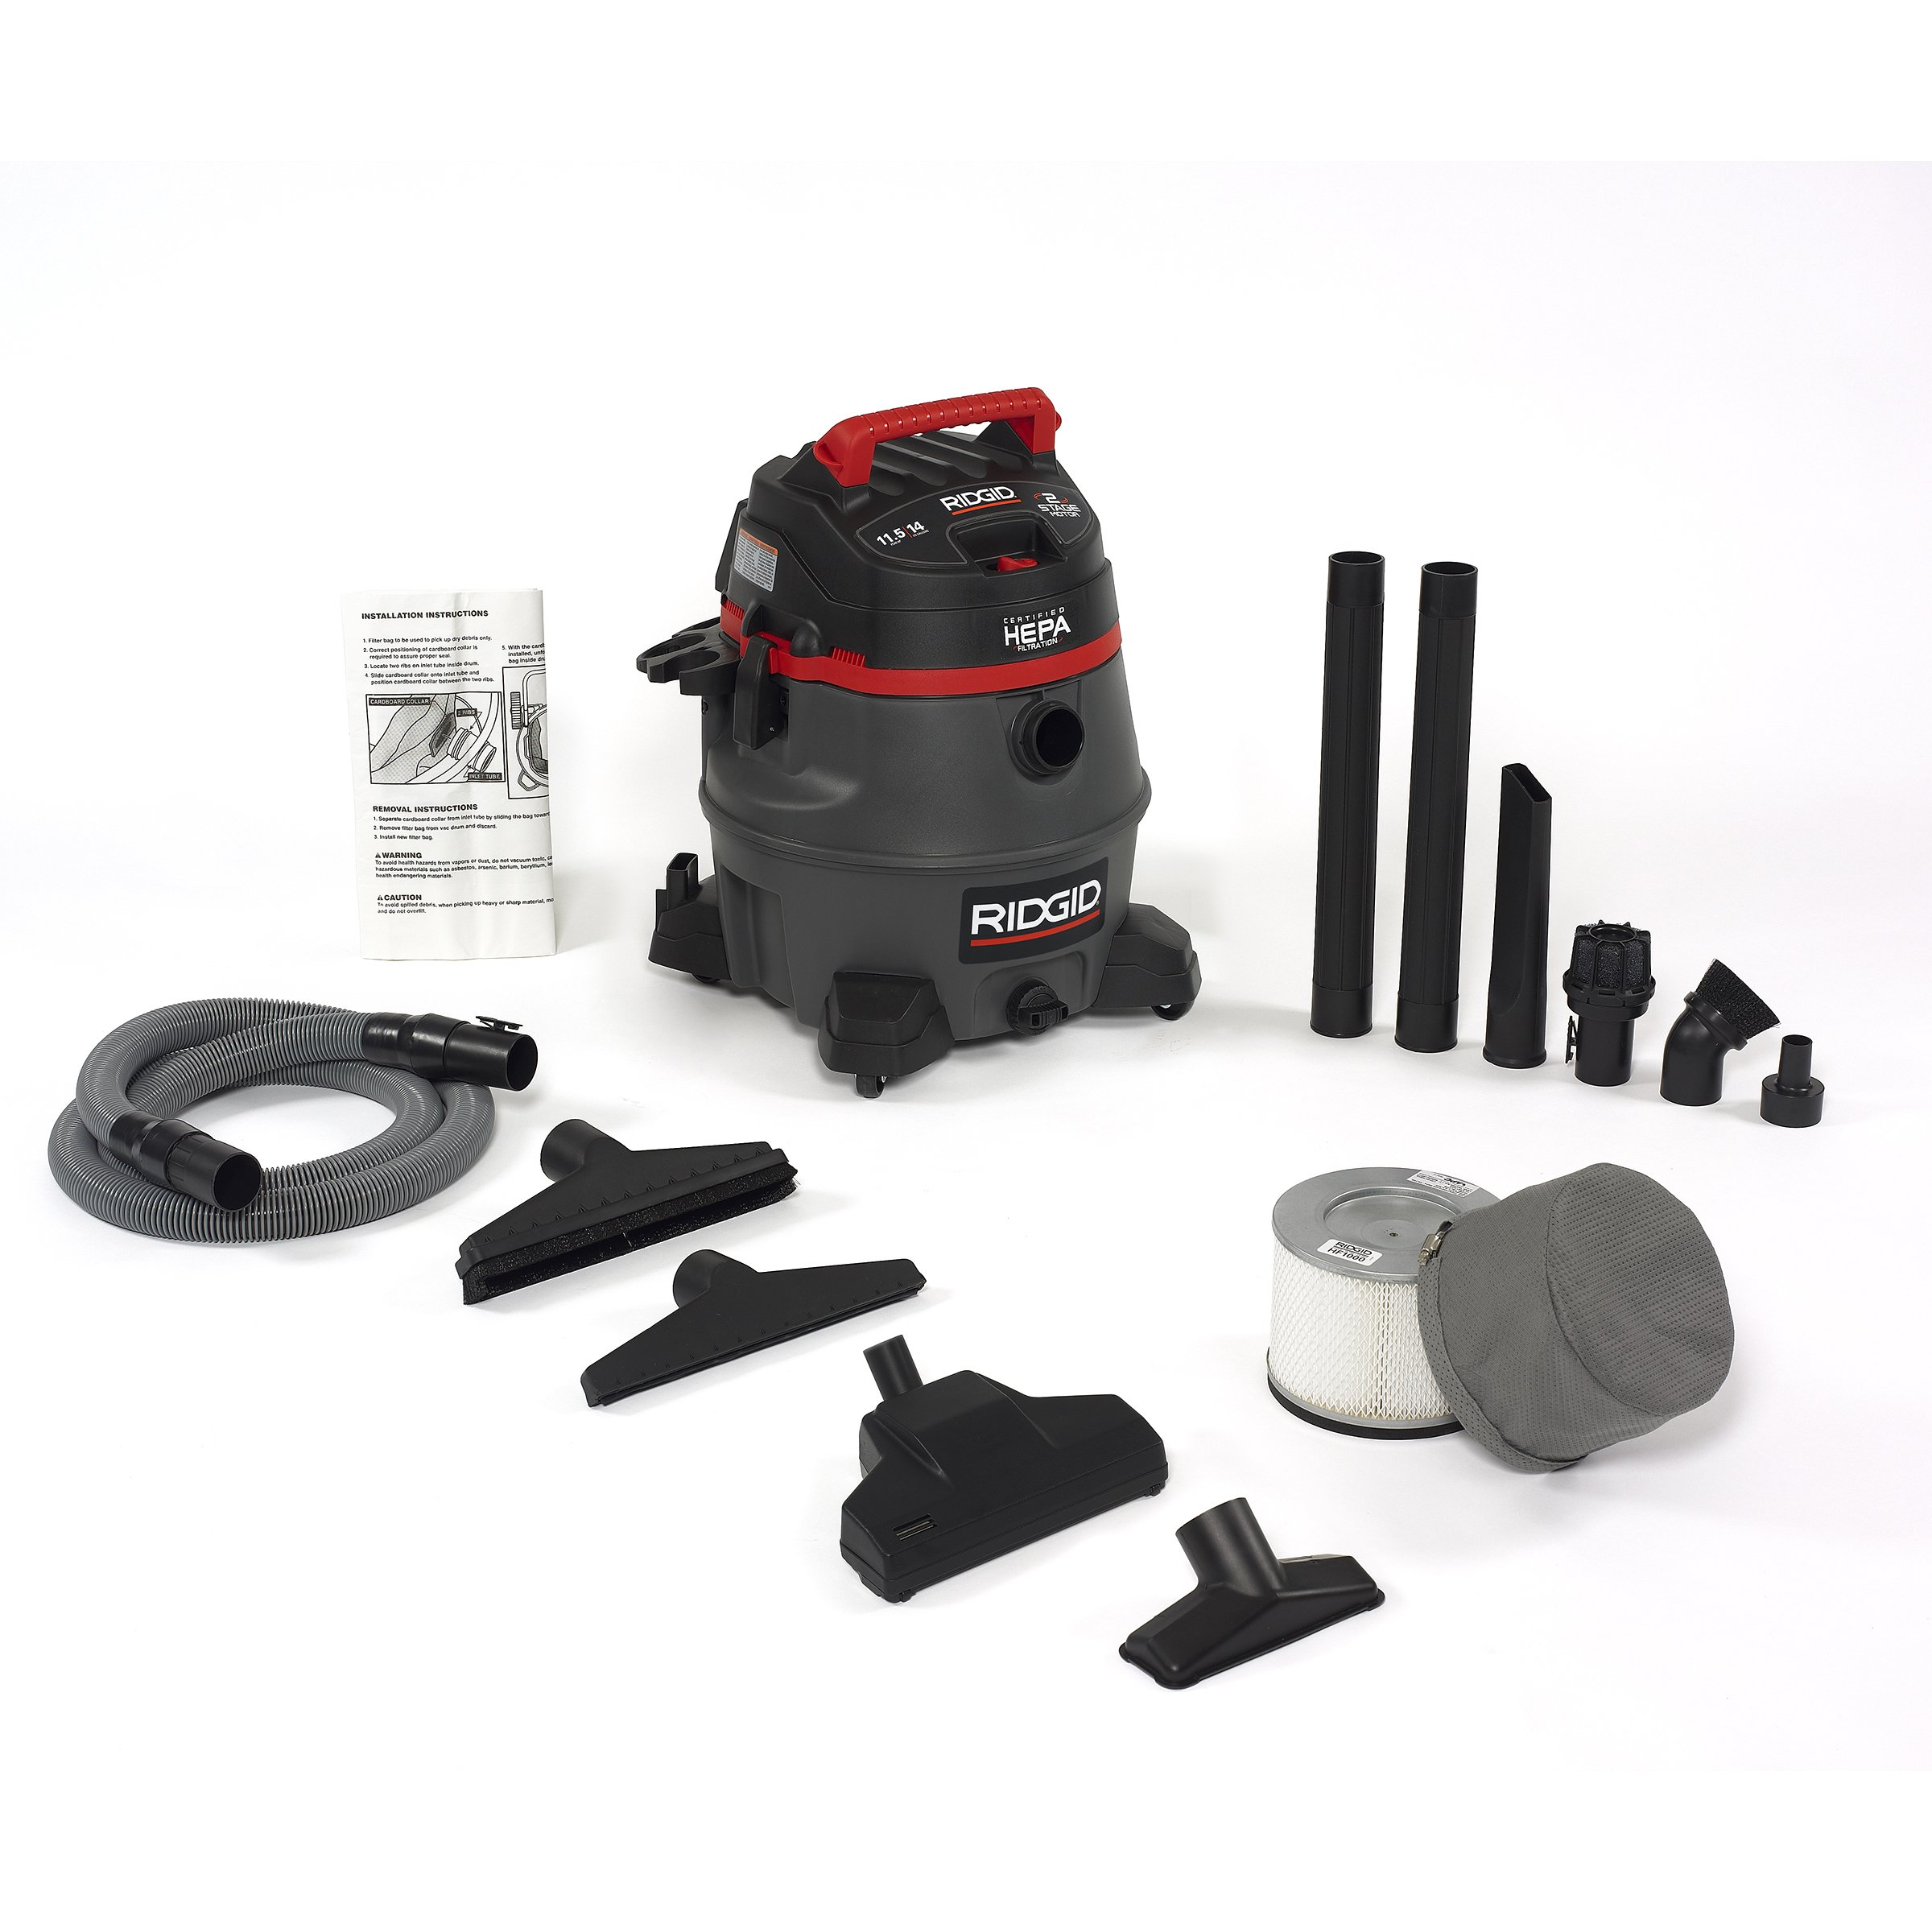 RIDGID 50368 RV2400HF Wet Dry Vacuum, 14-Gallon Shop Vacuum with Certified HEPA Filtration, 2-Stage 11.5A Motor, Casters, Pro Hose, Drain, Blower Port